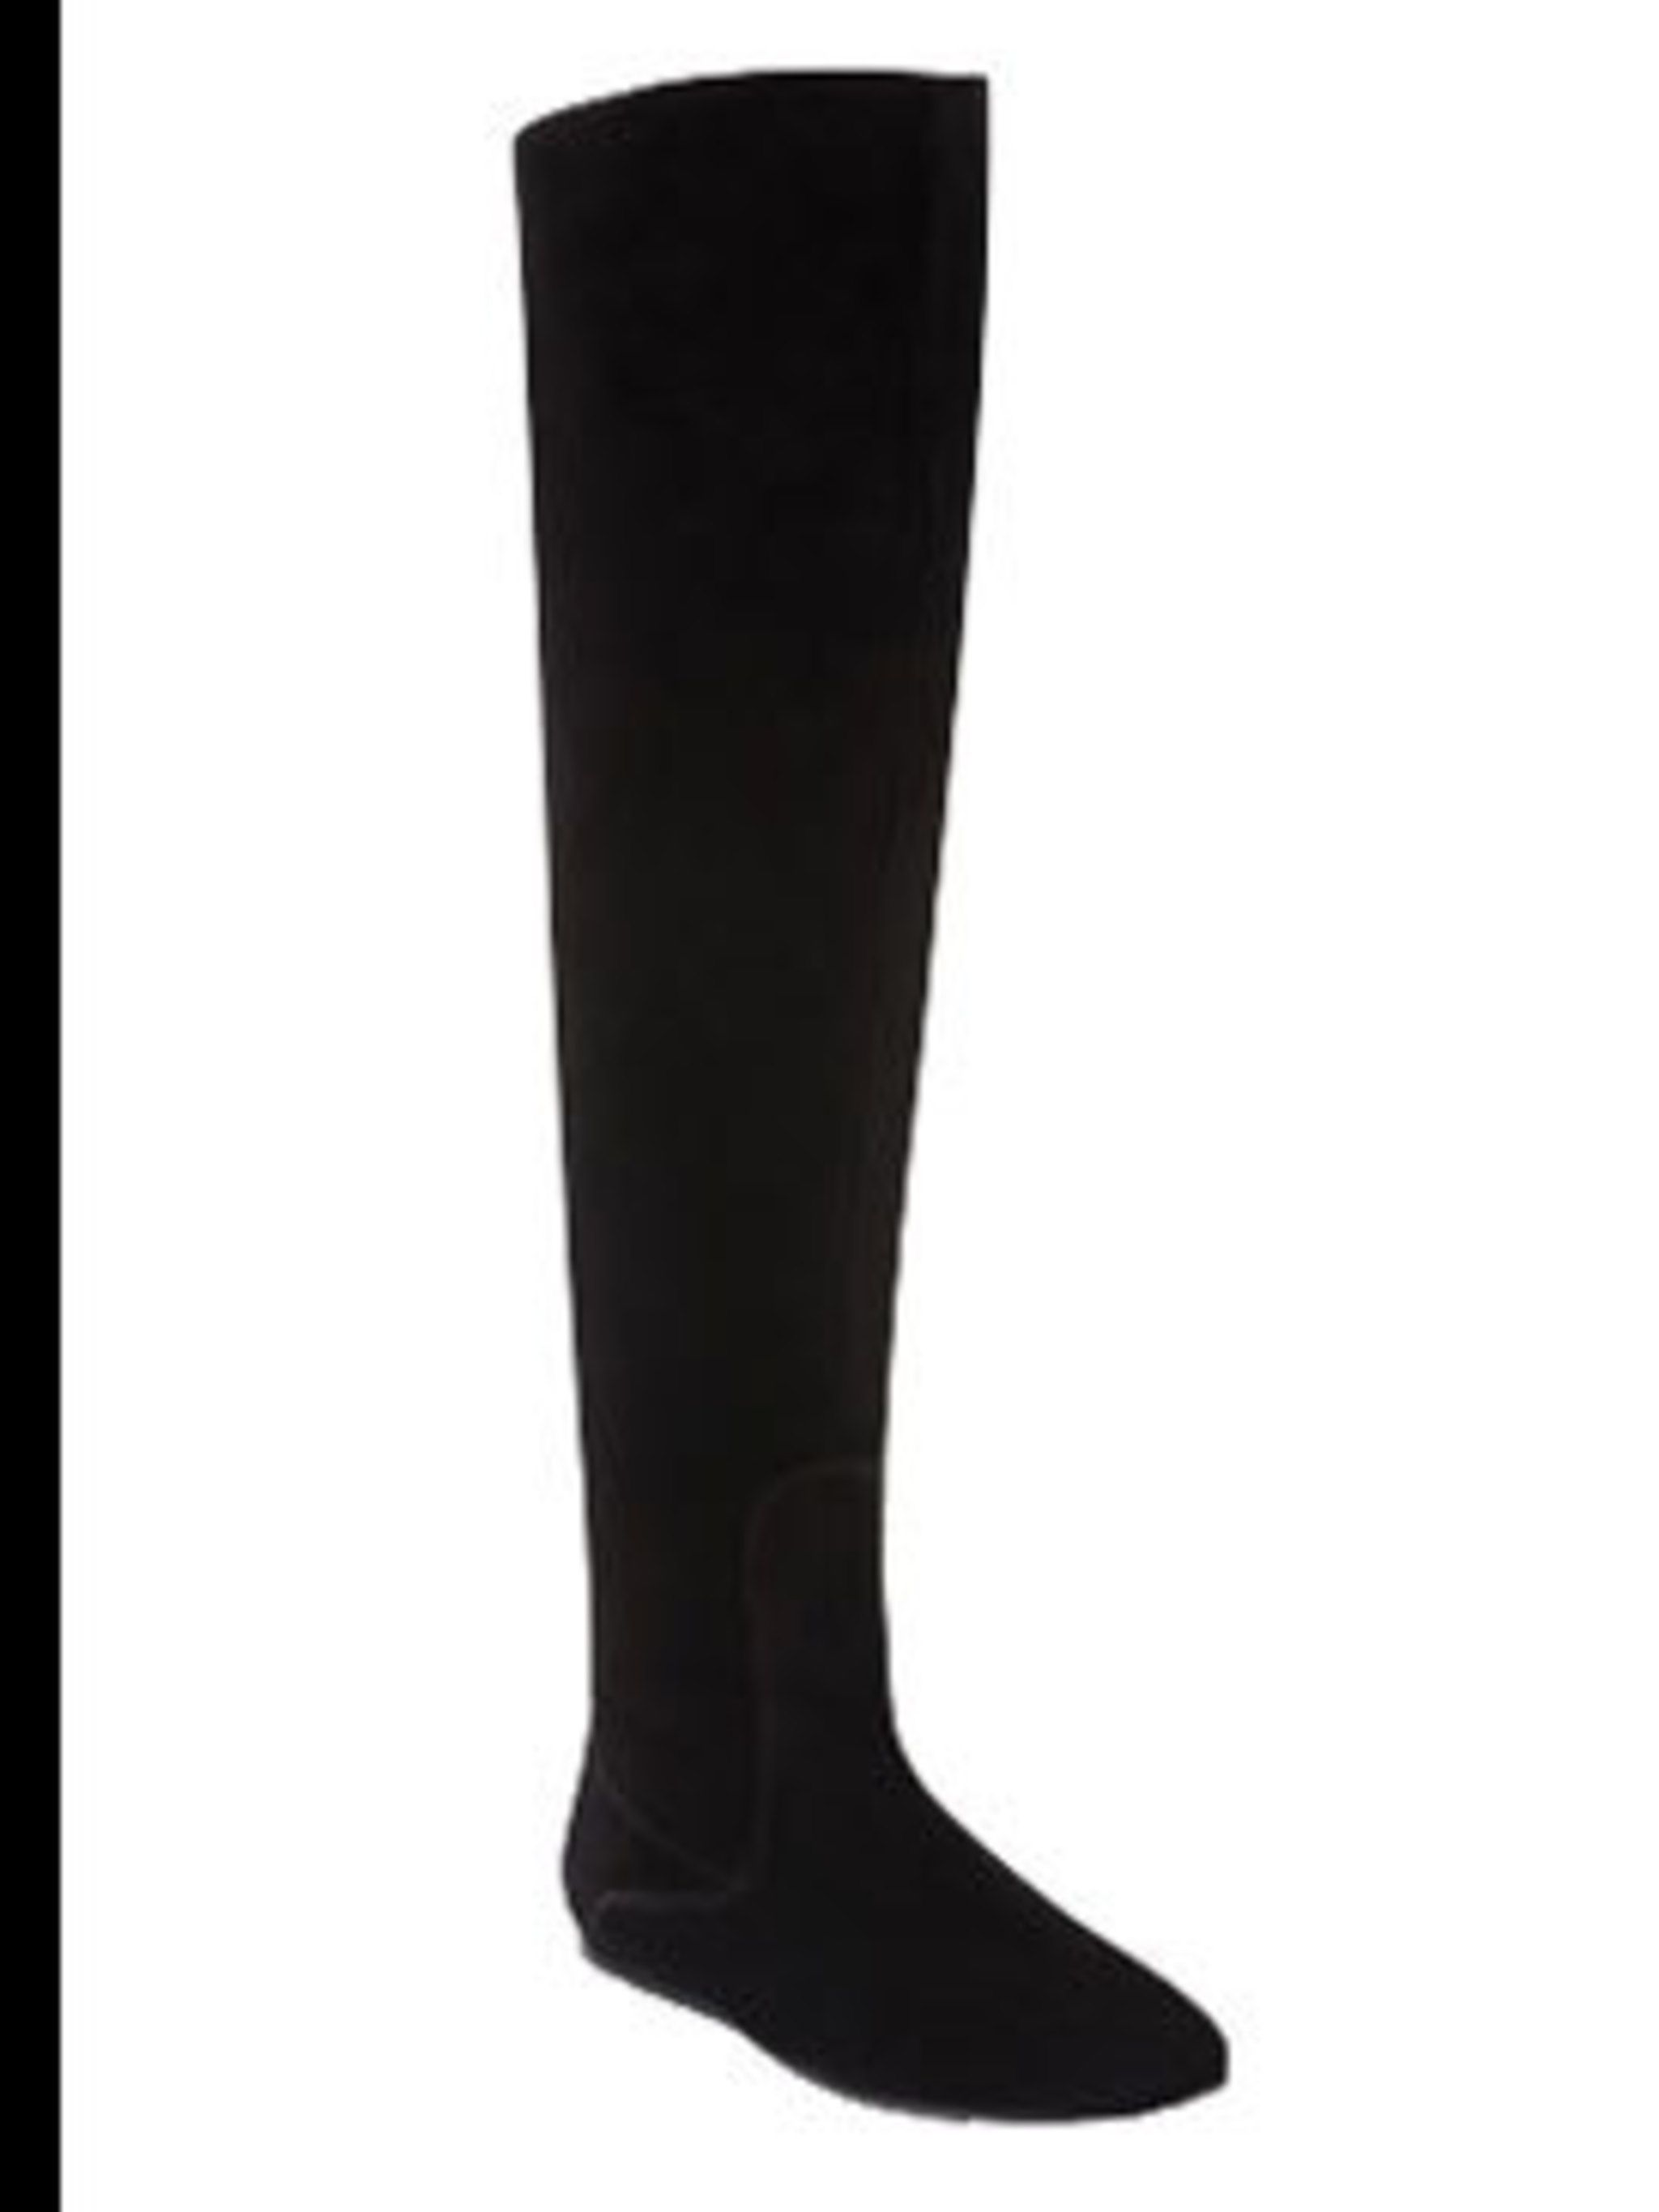 "<p>Black suede boots, £155, by <a href=""http://www.duoboots.com/products/boots/detail/calf_fitted_boots_contemporary/venice/246/colour/4-black_suede/"">Duo</a></p>"